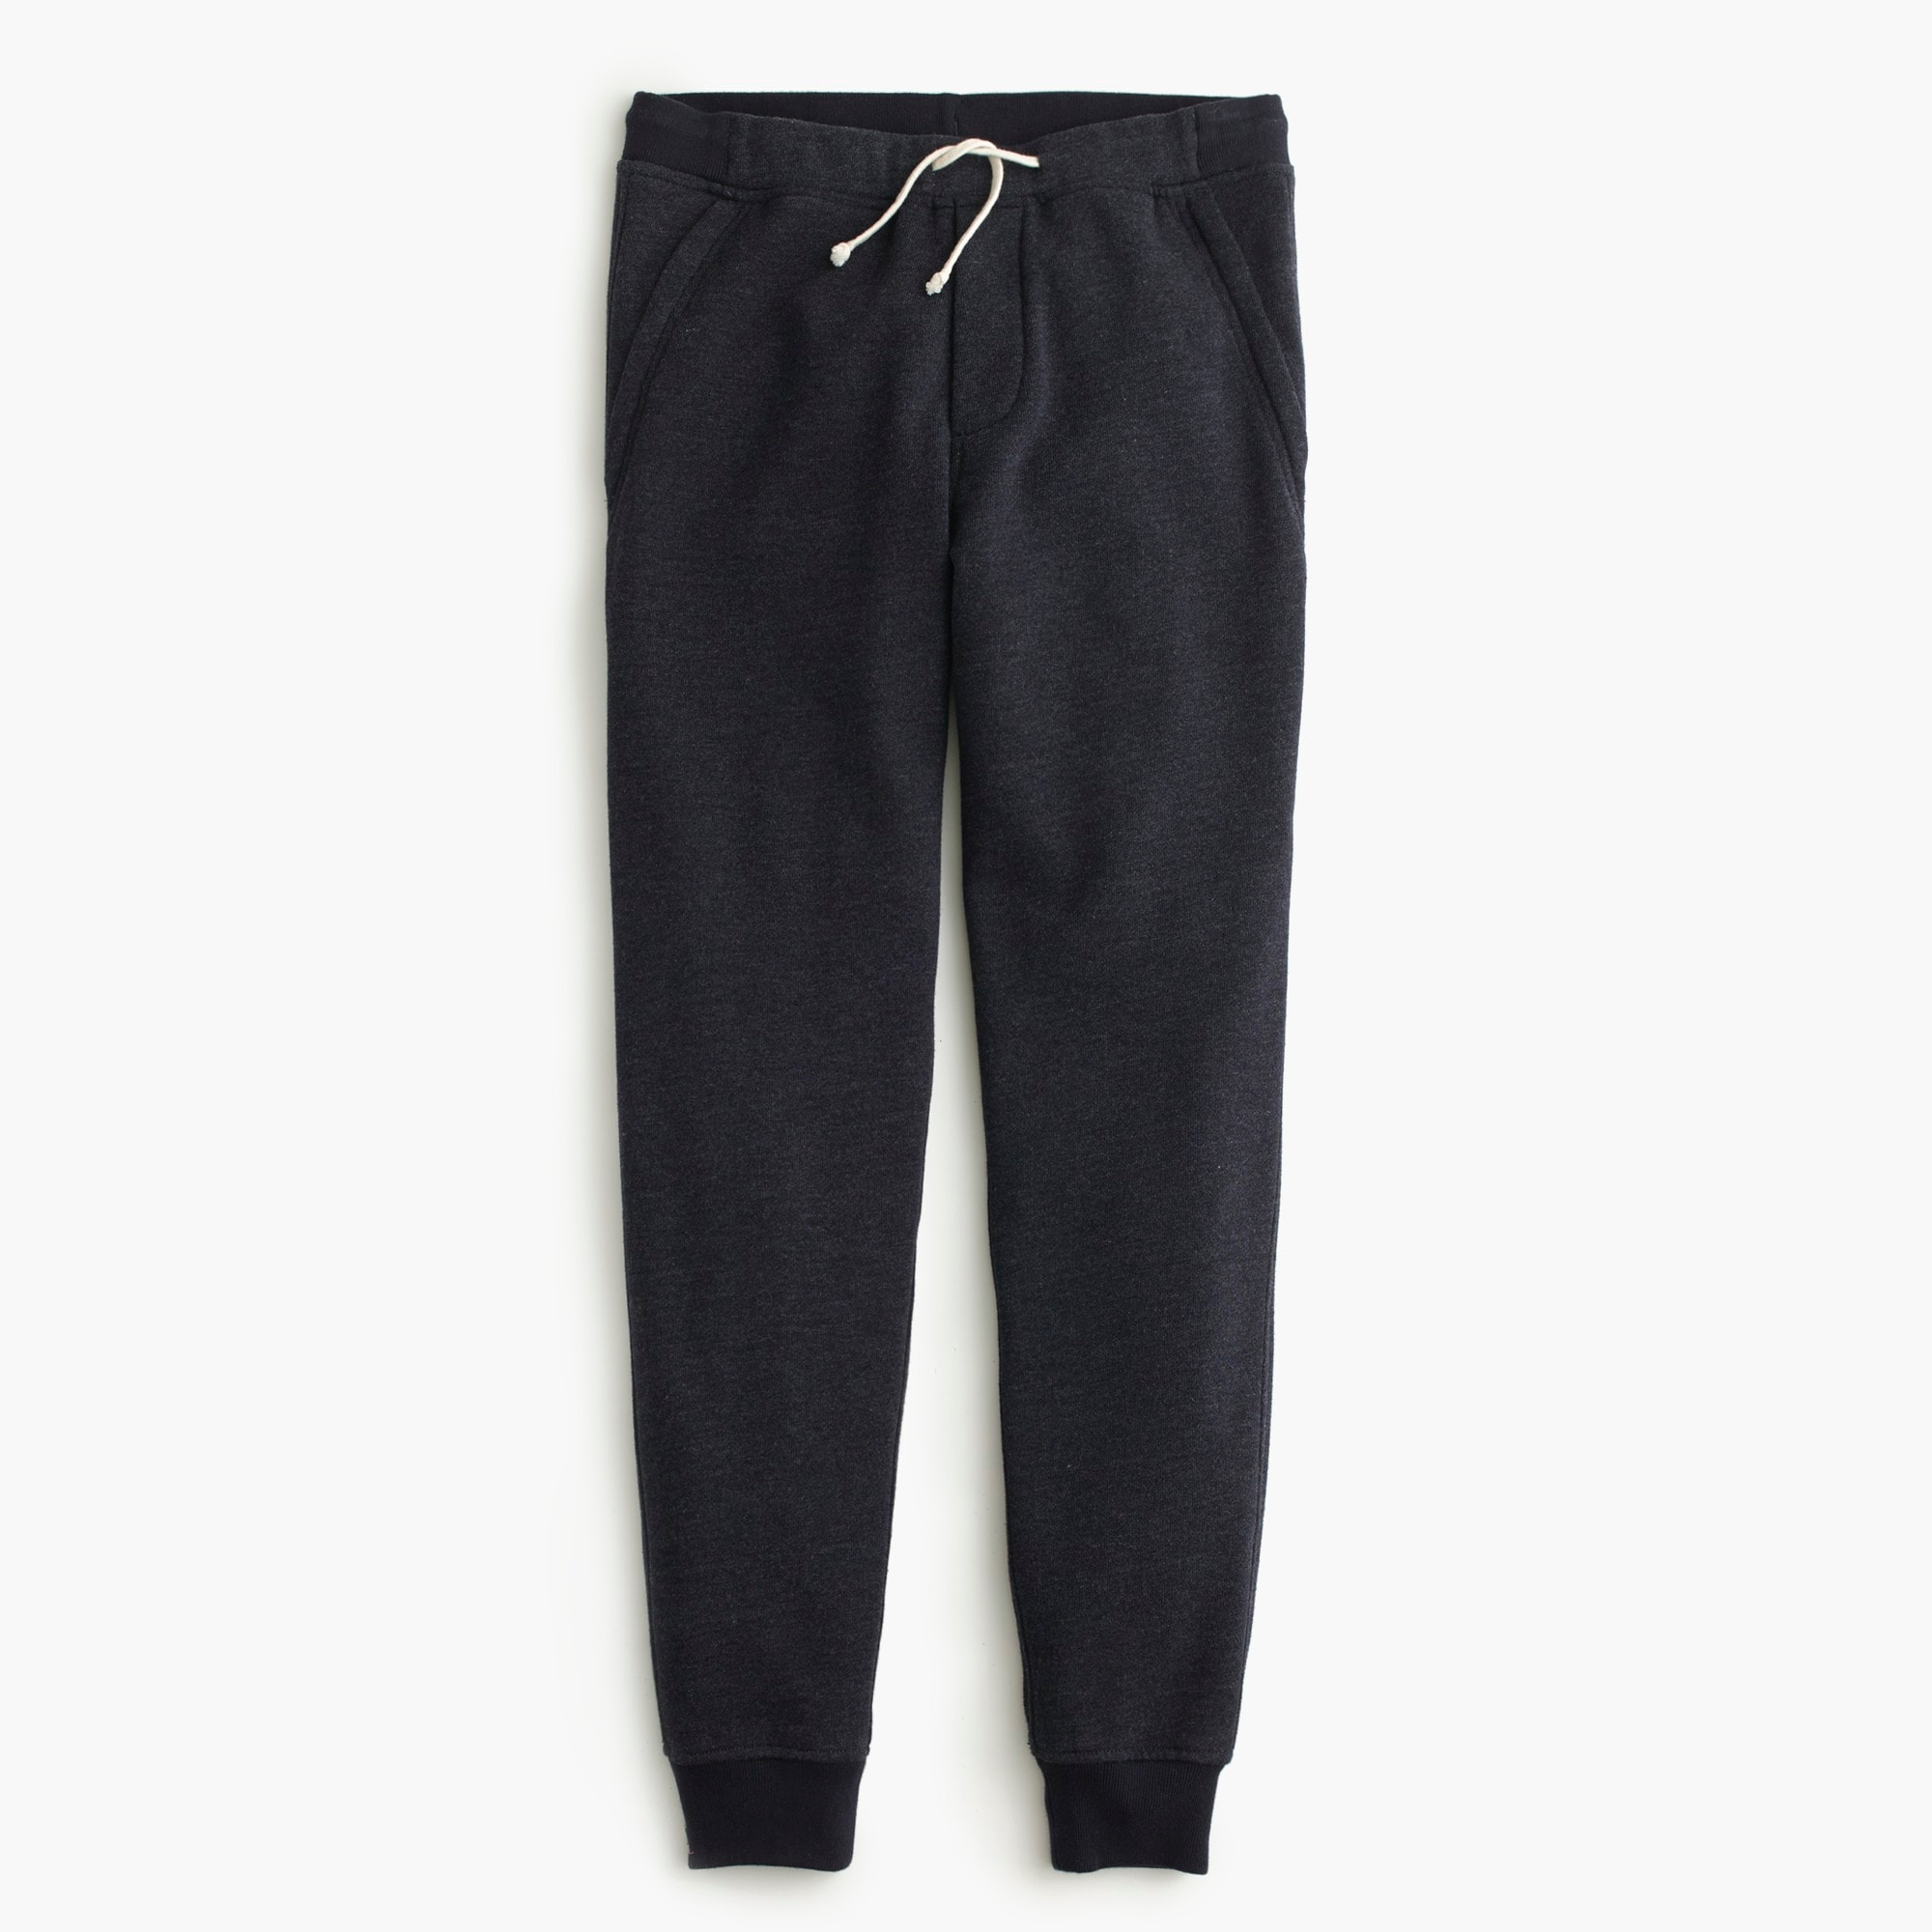 Image 2 for Slim classic zip-pocket sweatpant